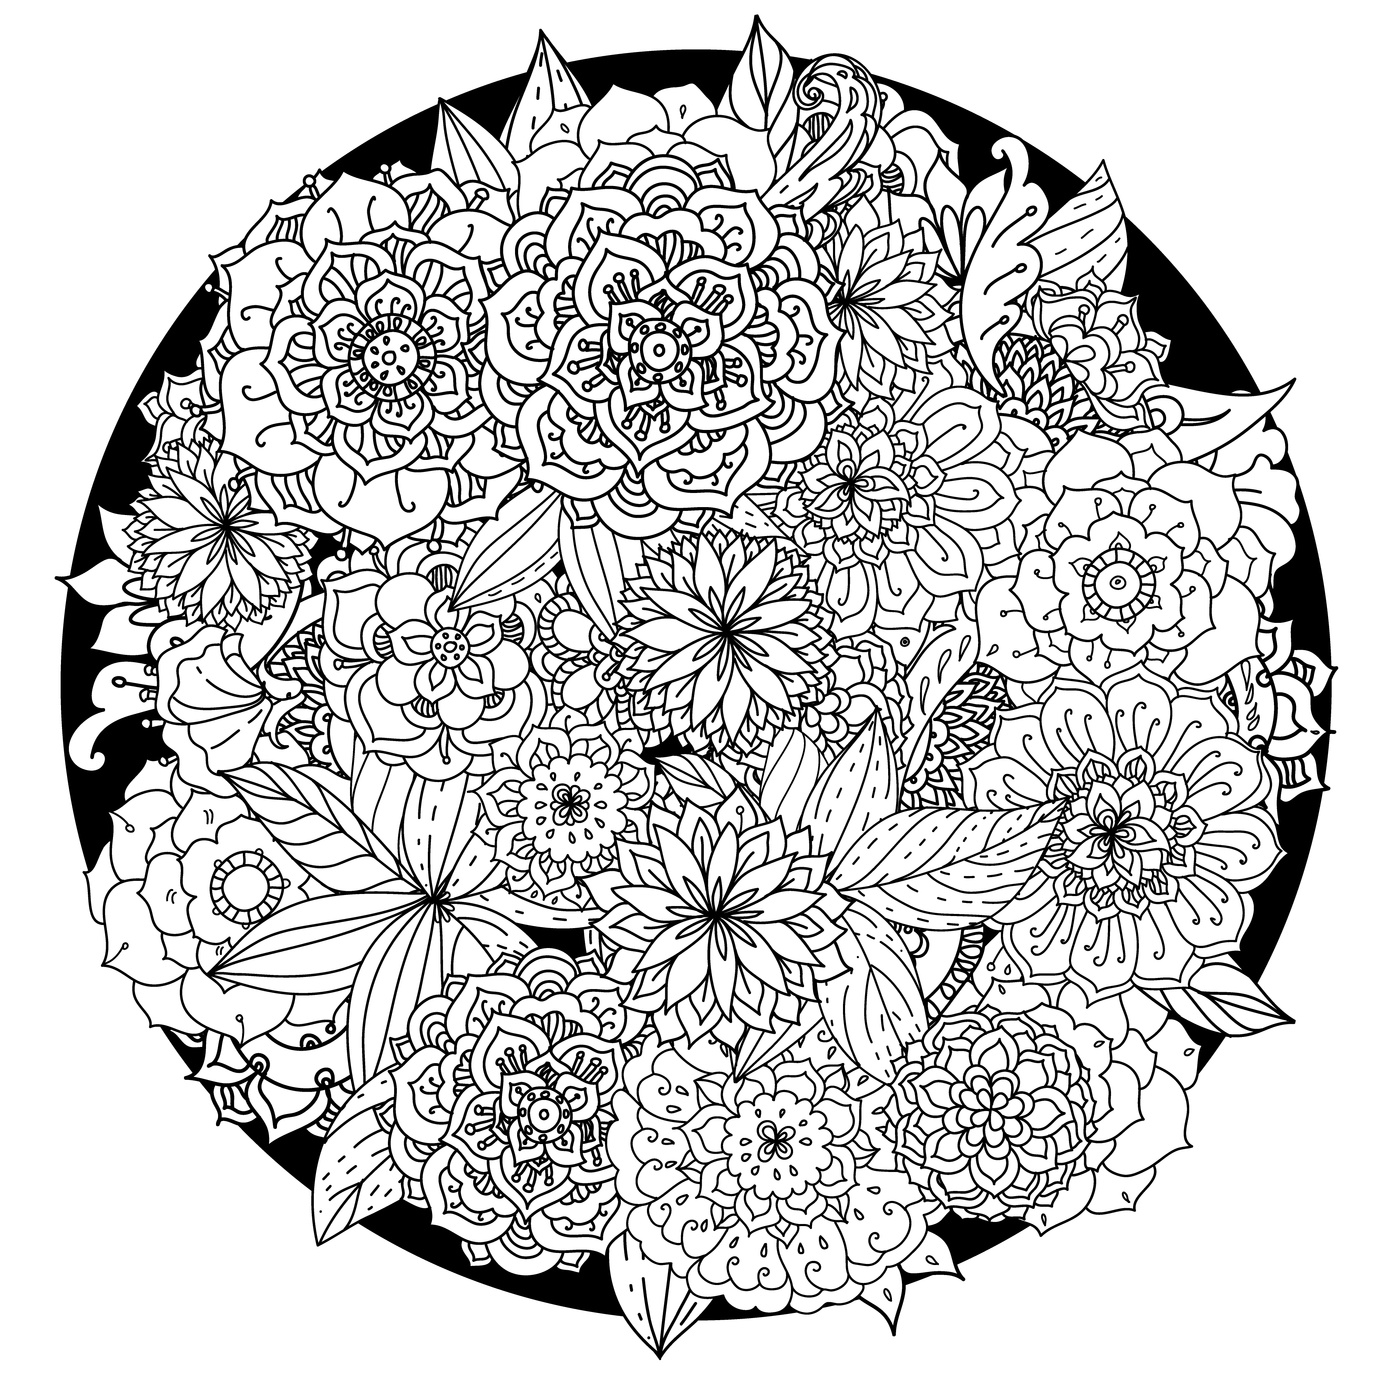 mandalas to color for adults ornamental floral mandala mandalas adult coloring pages adults color mandalas for to